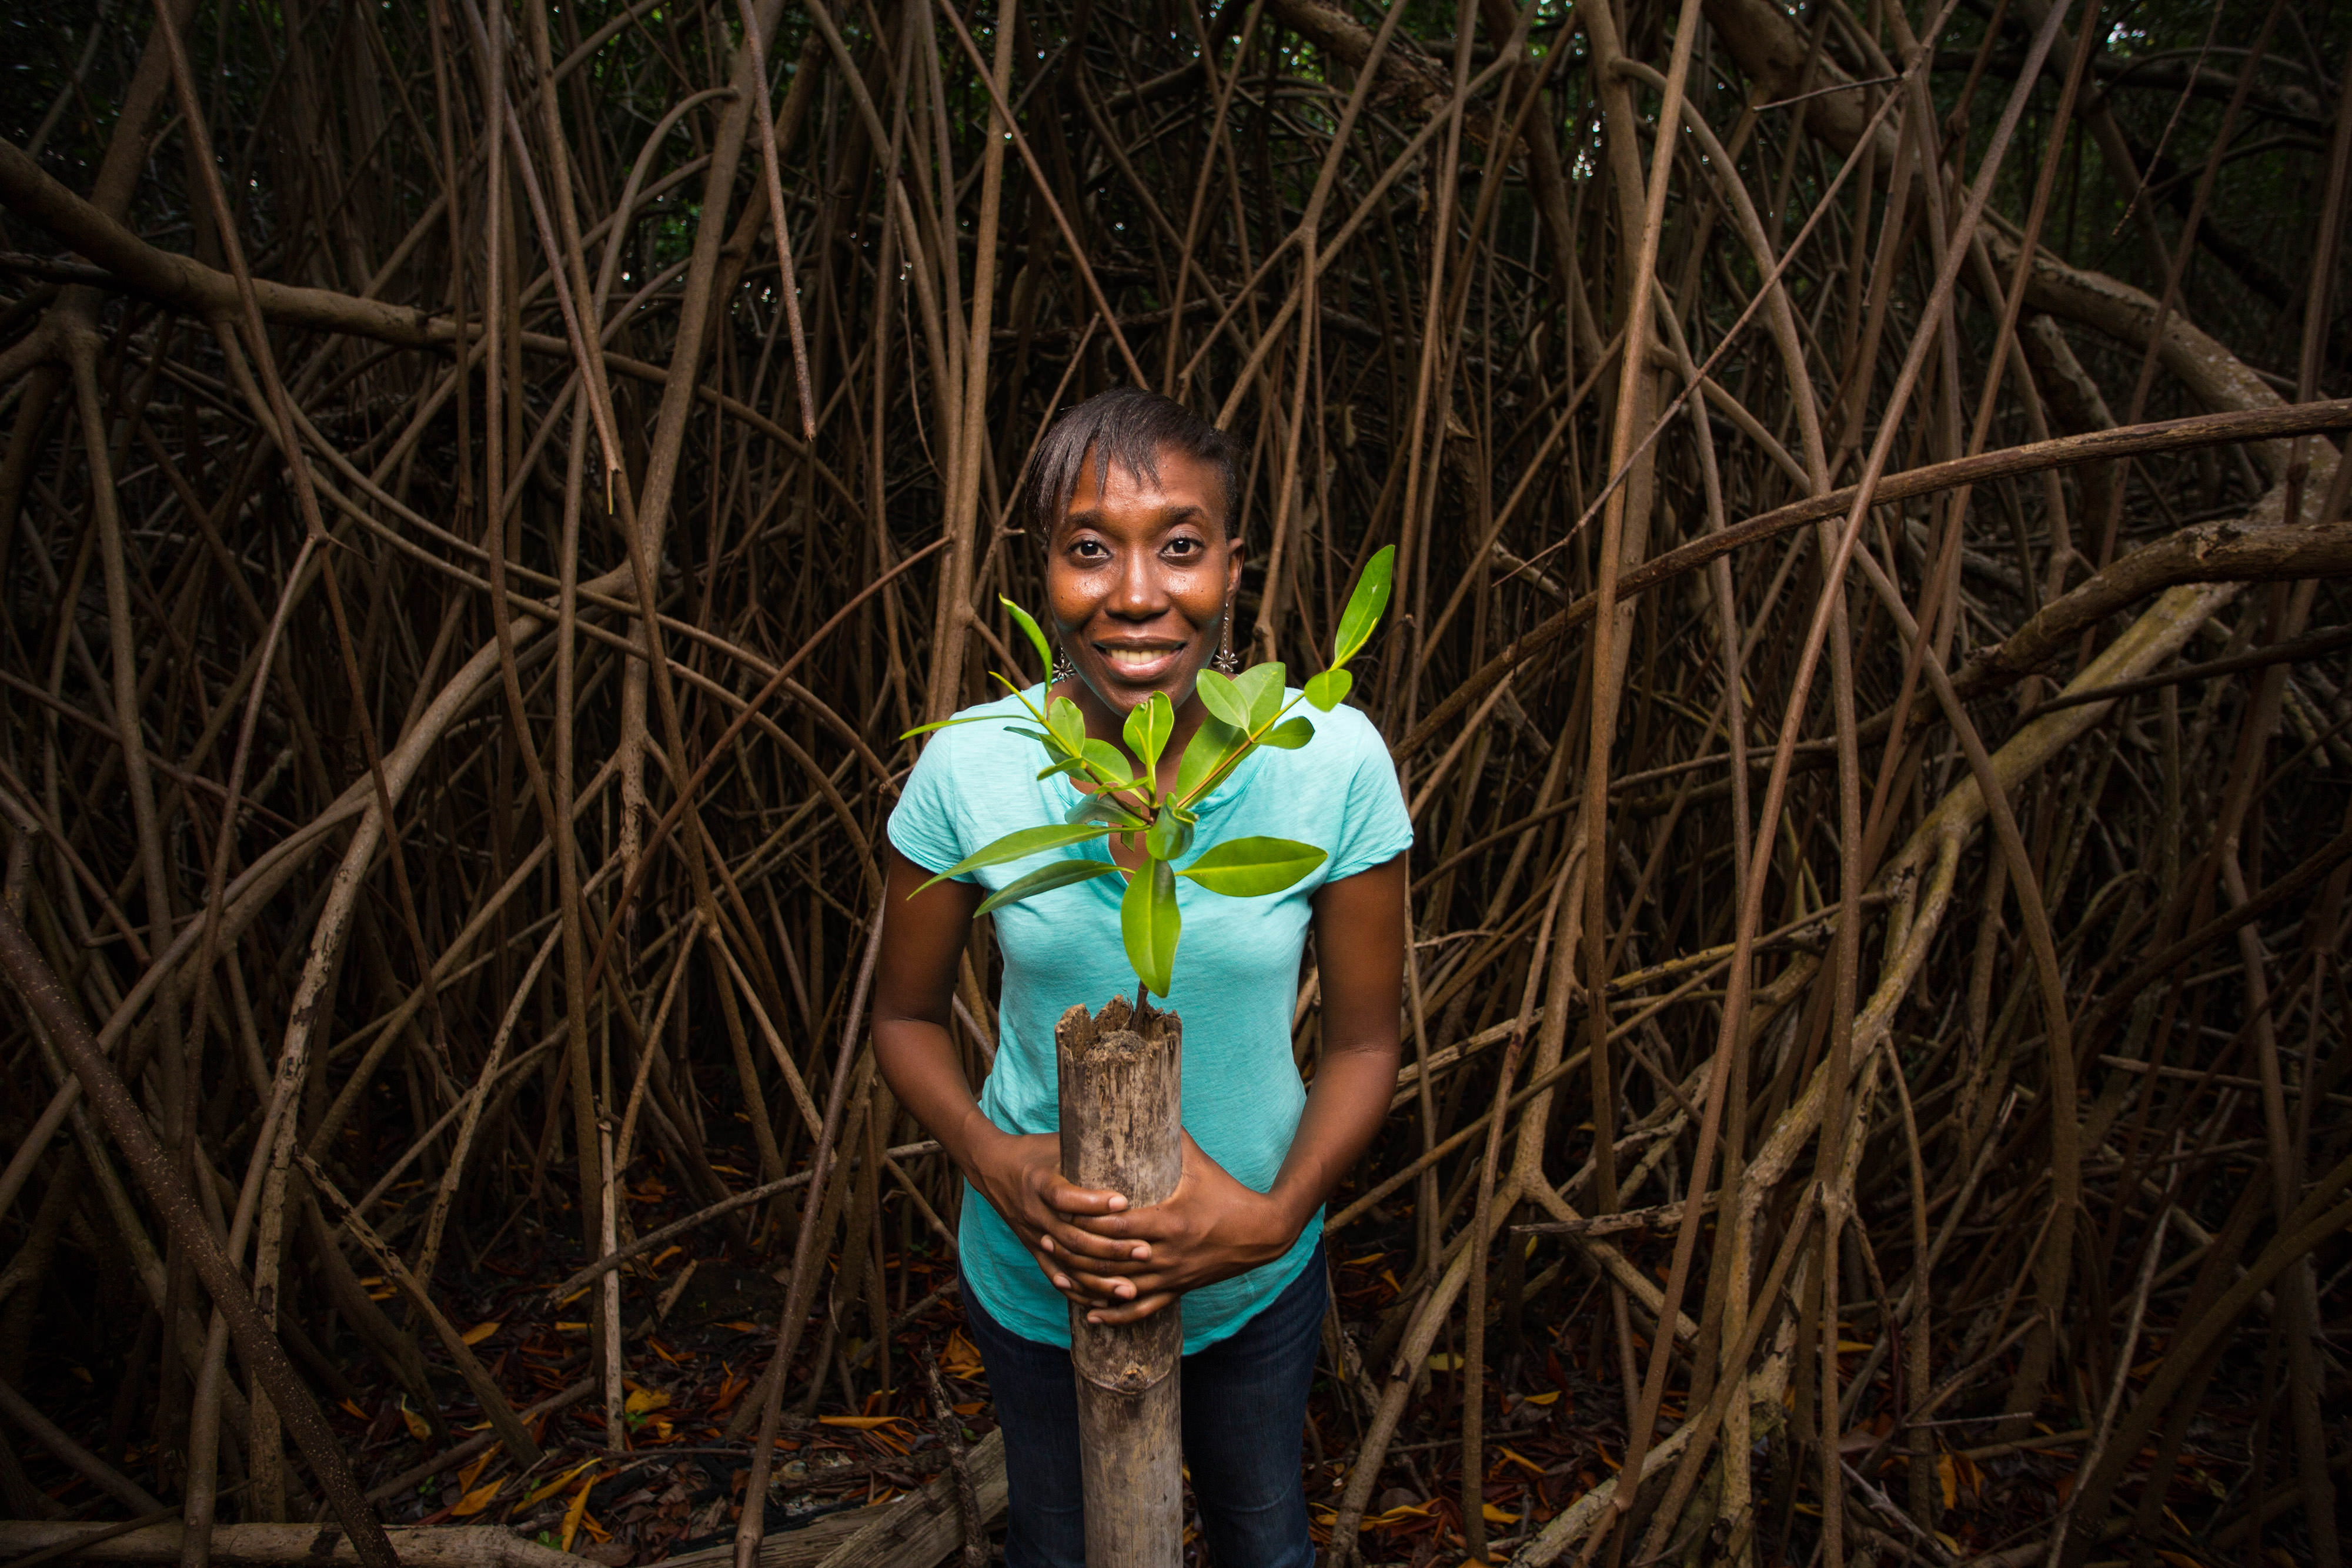 woman smiles while holding mangrove saplings at night in grenada